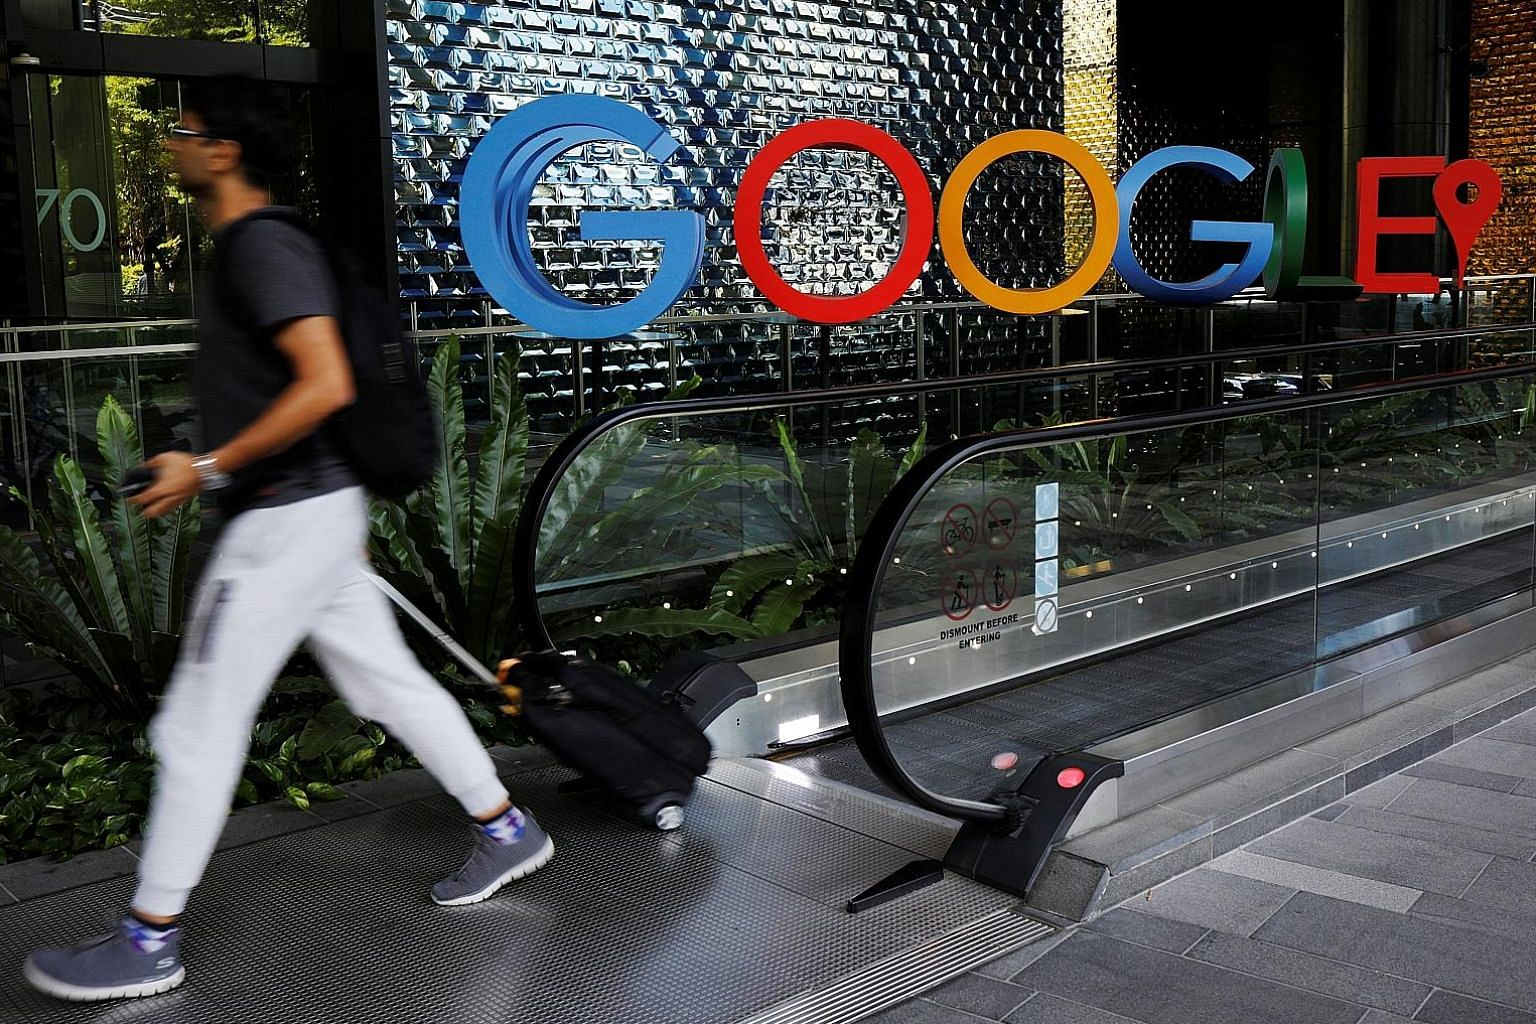 Google's Singapore office has more than 1,000 employees, up from 24 in 2007. The EDB says that 80 of the world's top 100 tech firms now have operations here. PHOTO: REUTERS